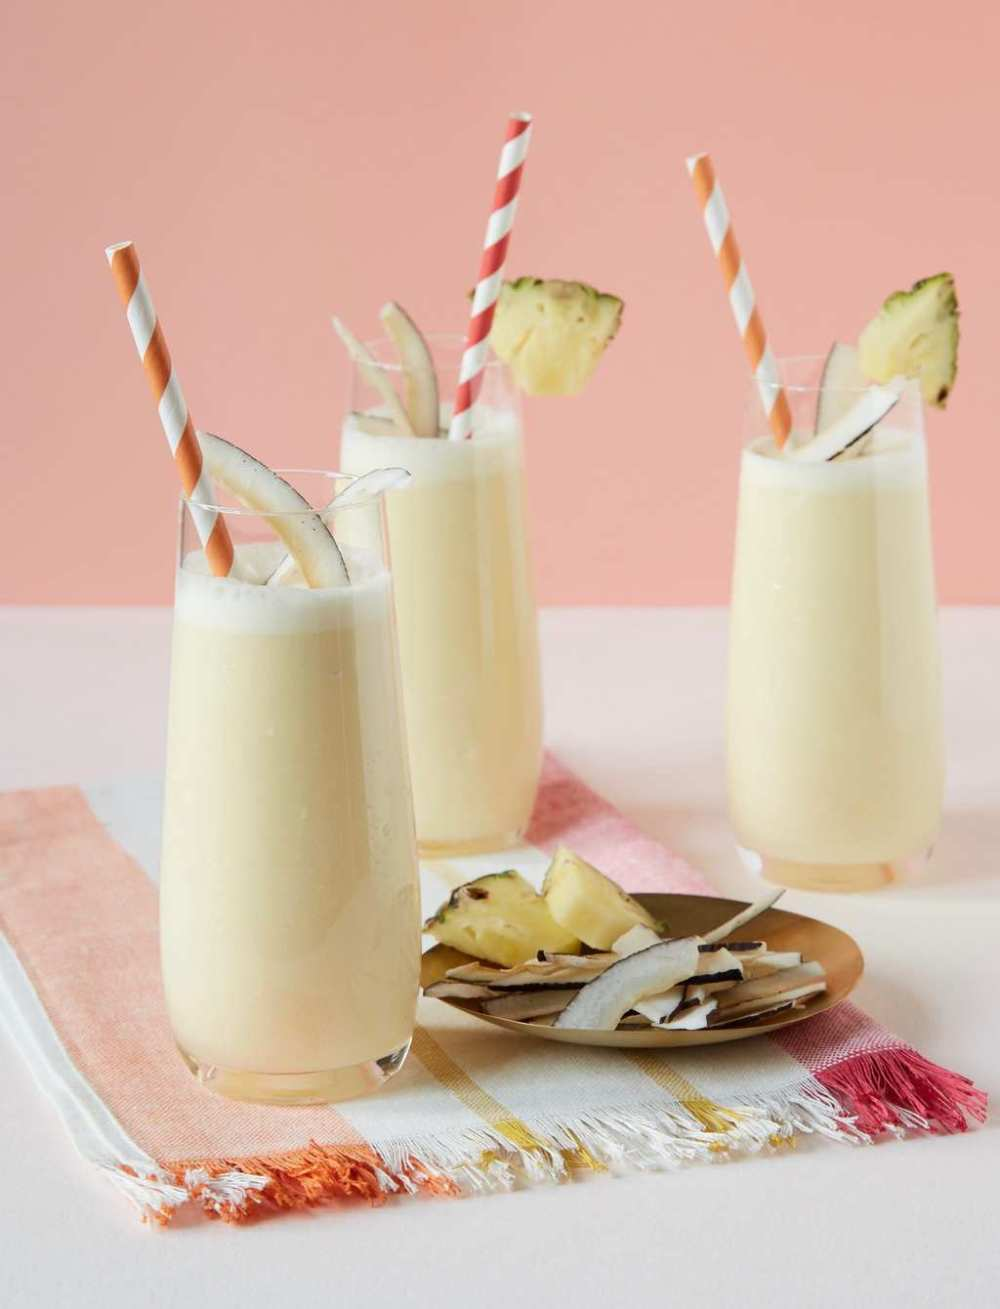 This is the perfect pina colada recipe for your next summer party